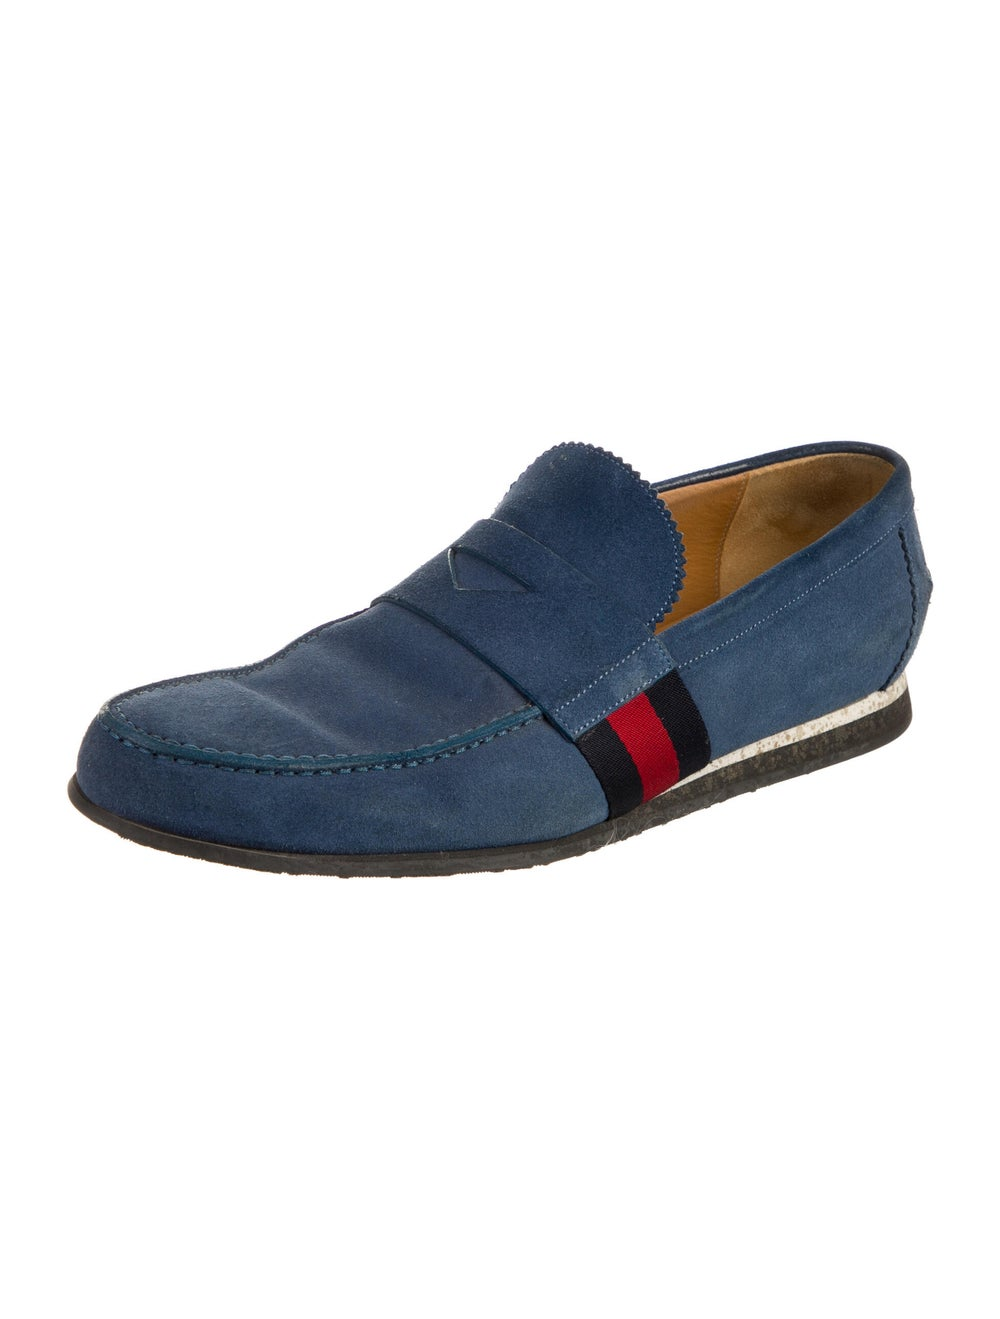 Gucci Suede Colorblock Pattern Loafers Blue - image 2